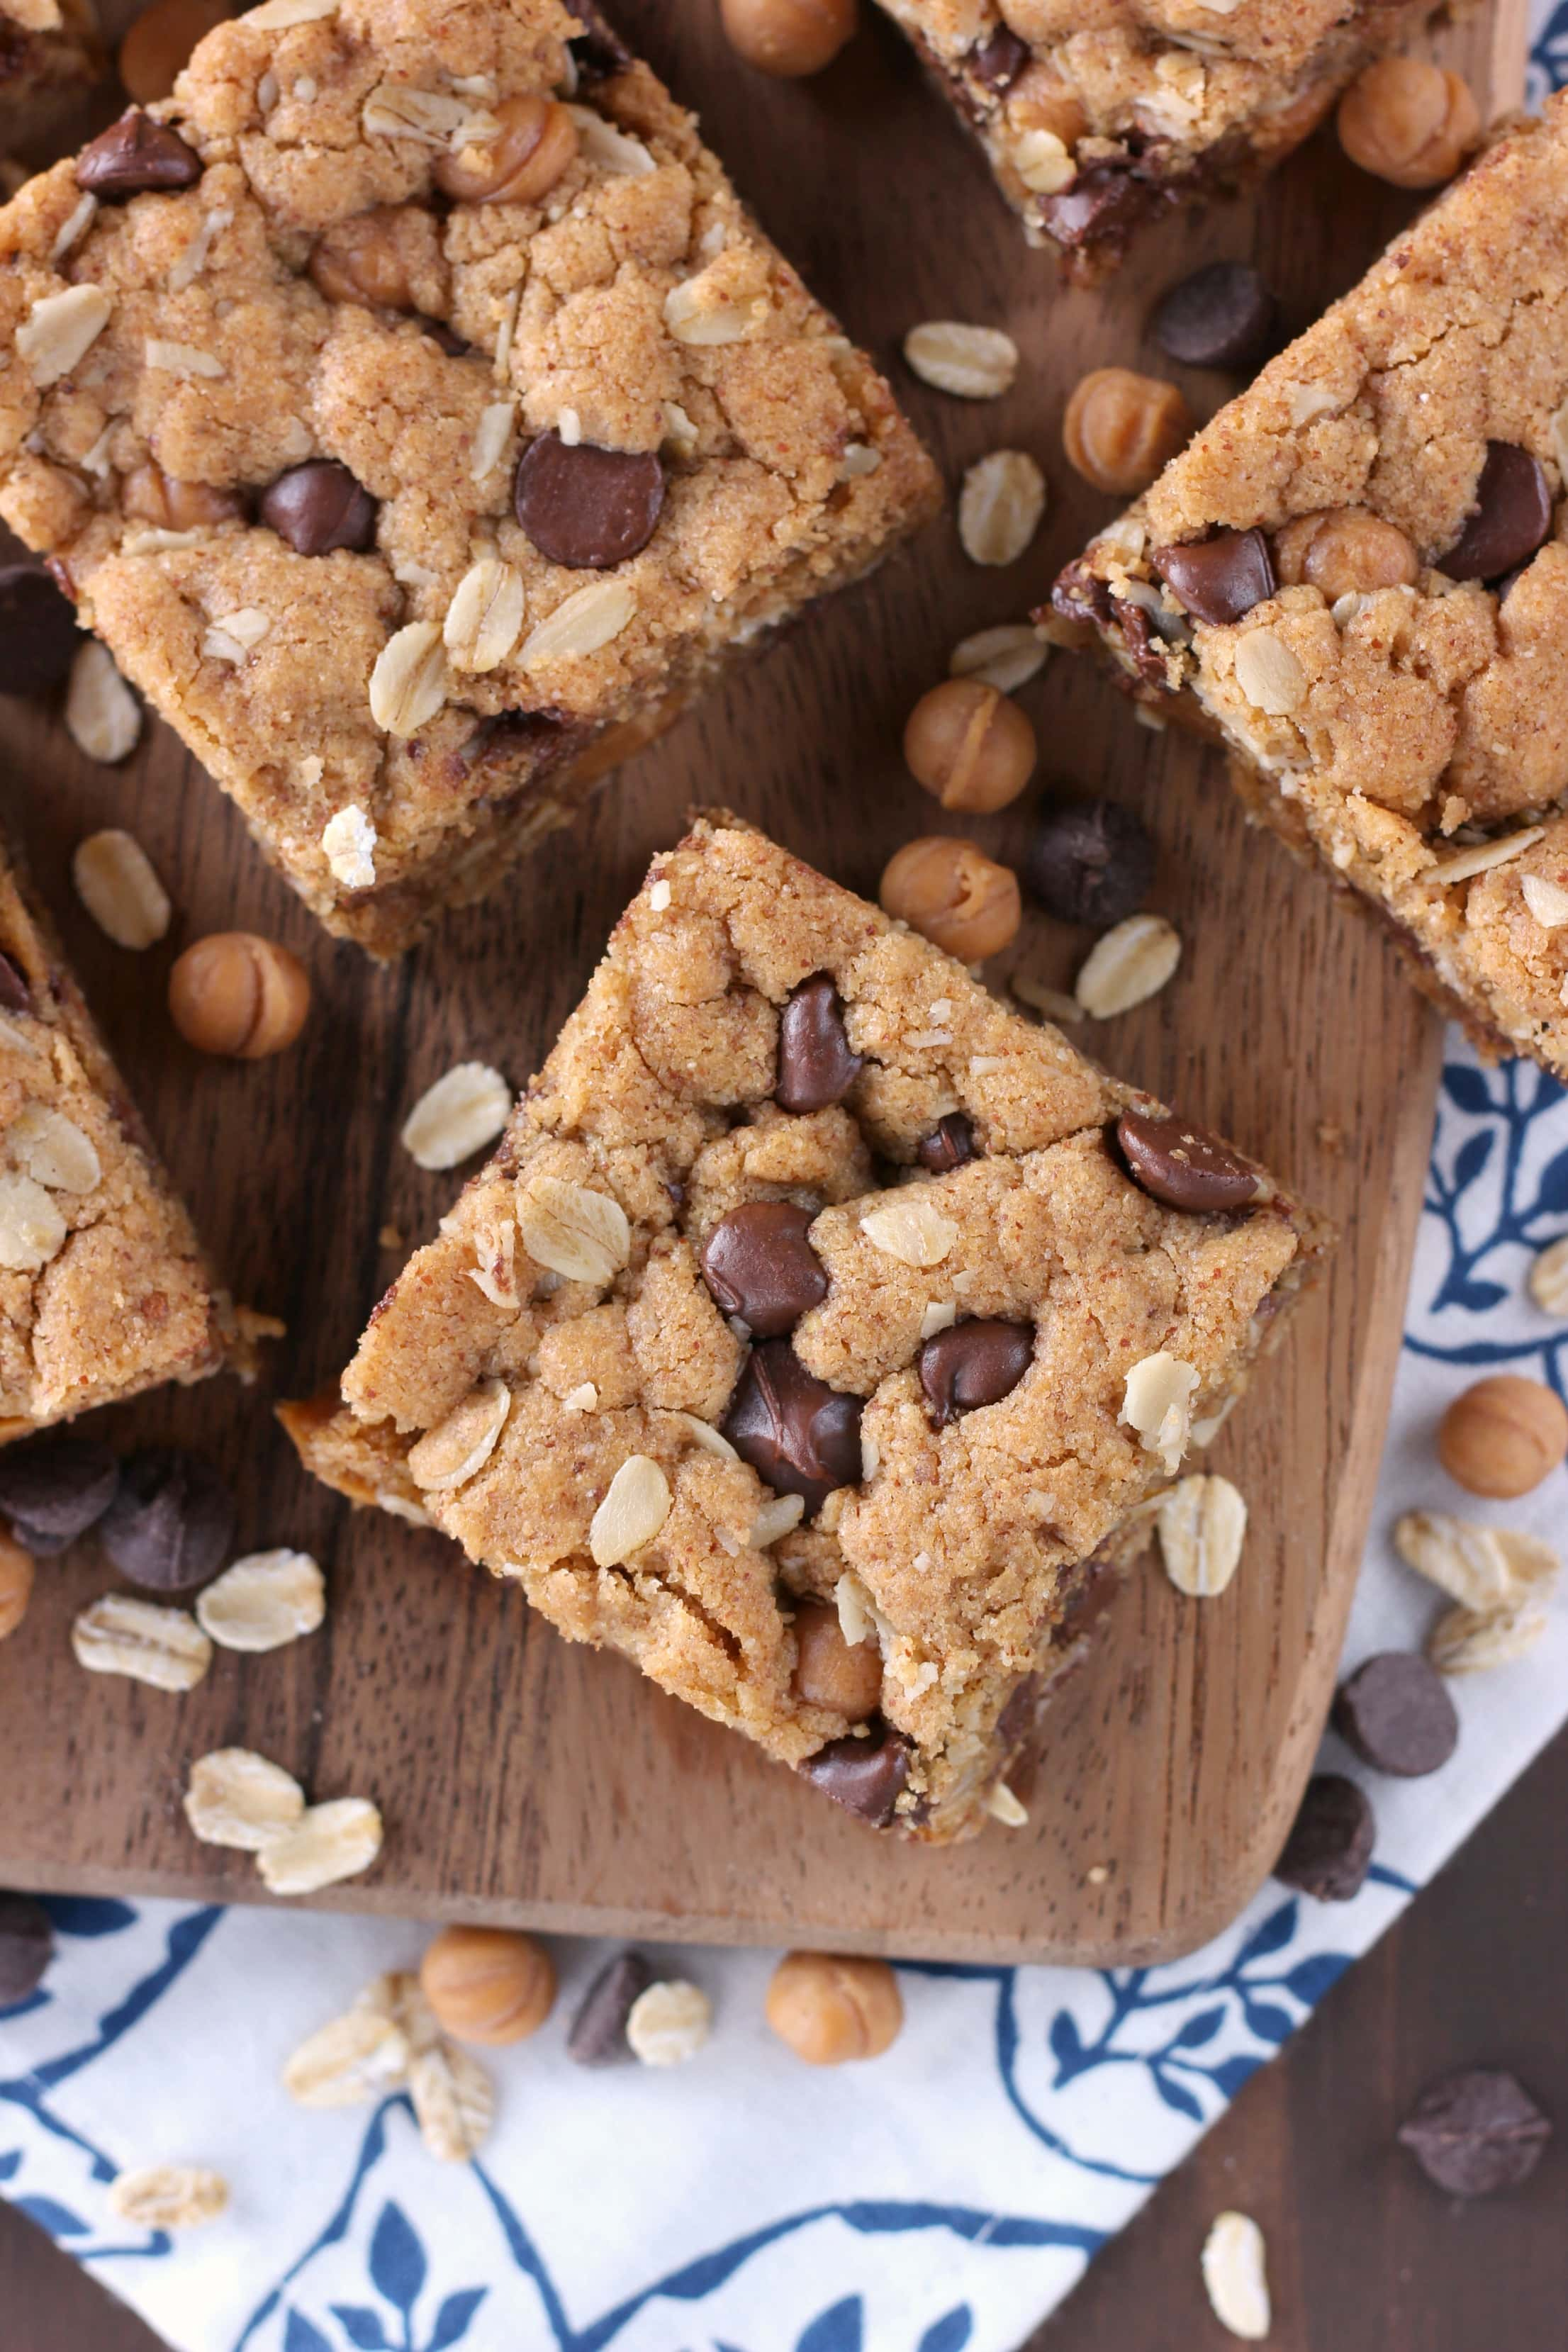 Easy Chocolate Caramel Almond Butter Bars Recipe from A Kitchen Addiction